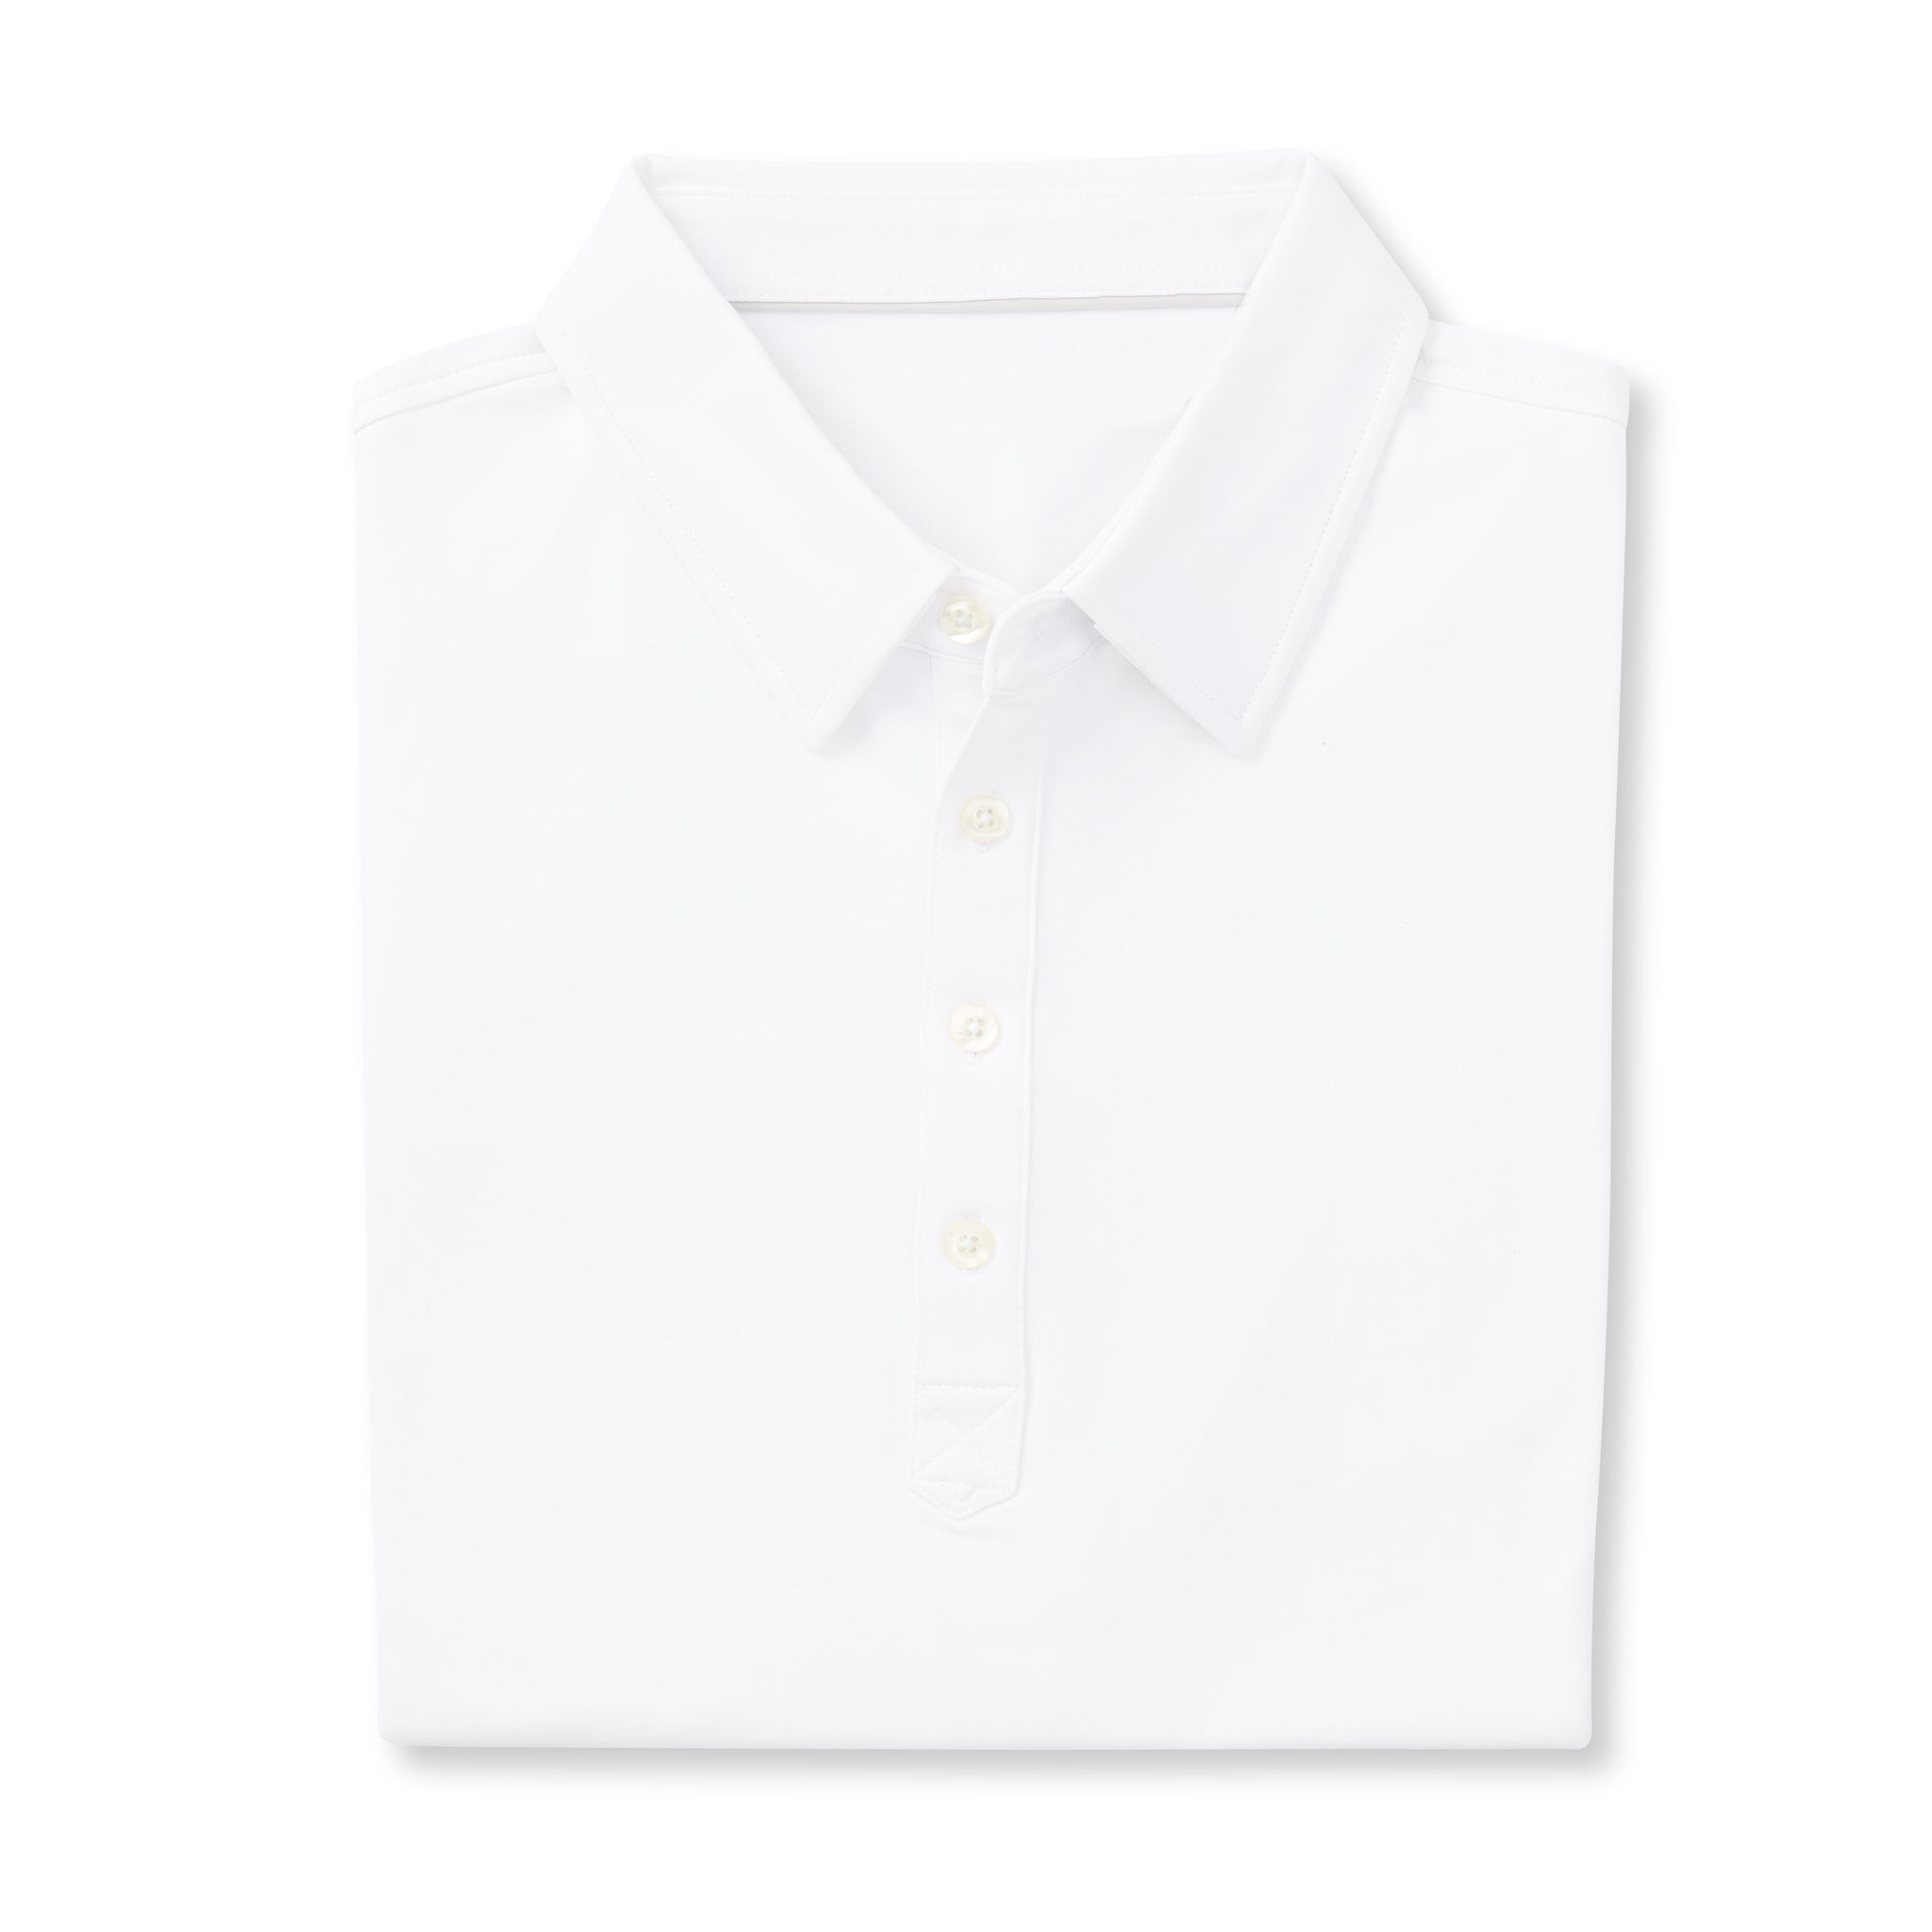 LUXTEC Champions Short Sleeve Polo - White IS72400